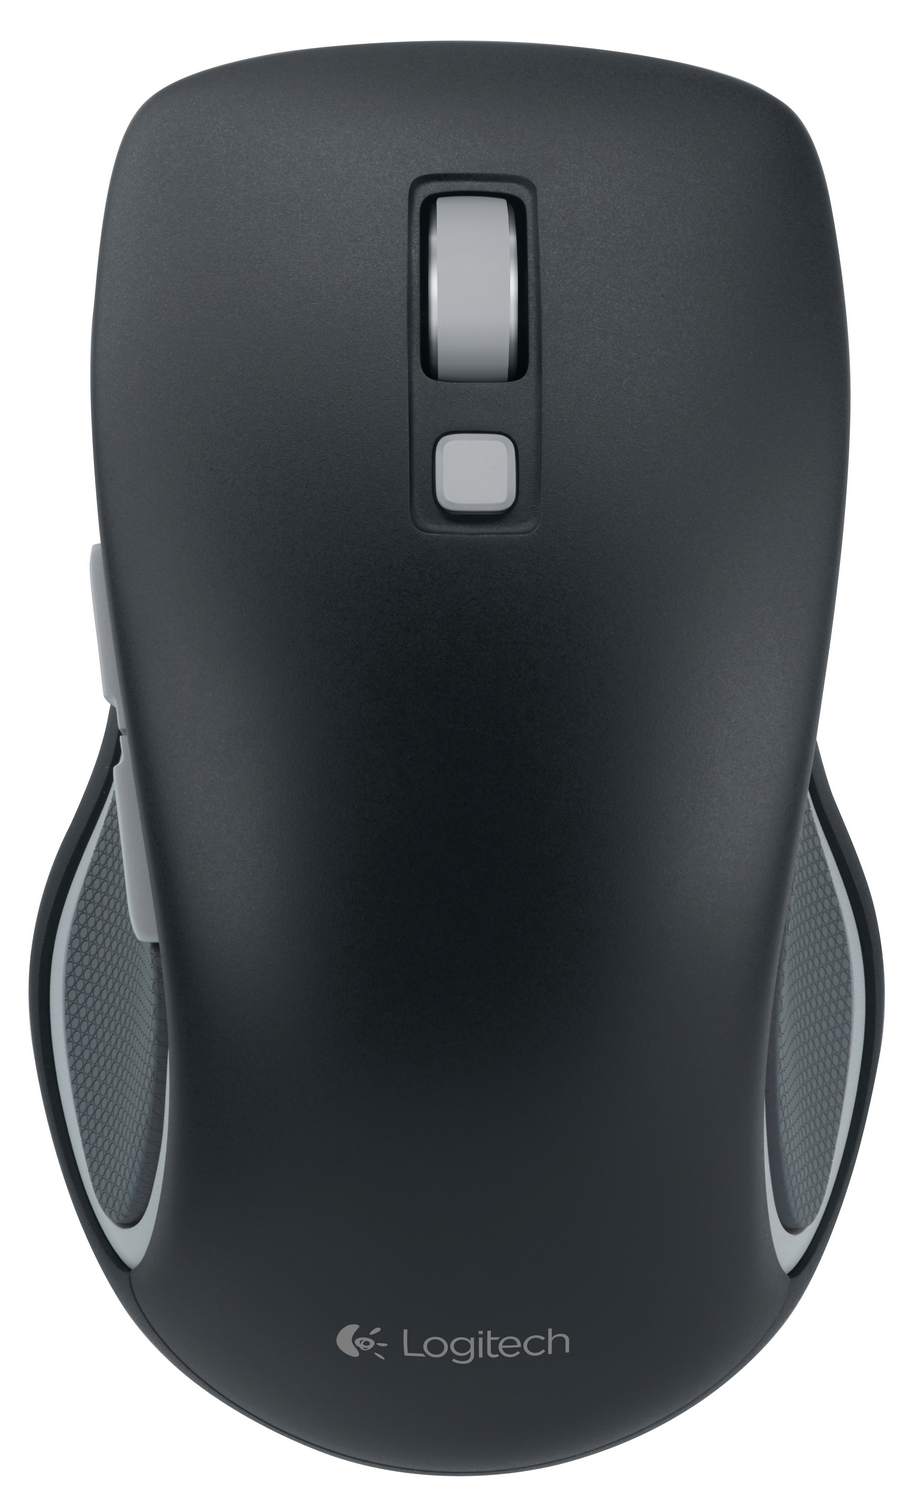 Wireless Mouse M560 Logitech Support 24ghz Special Lightweight Optical With Usb Receiver Connection Type